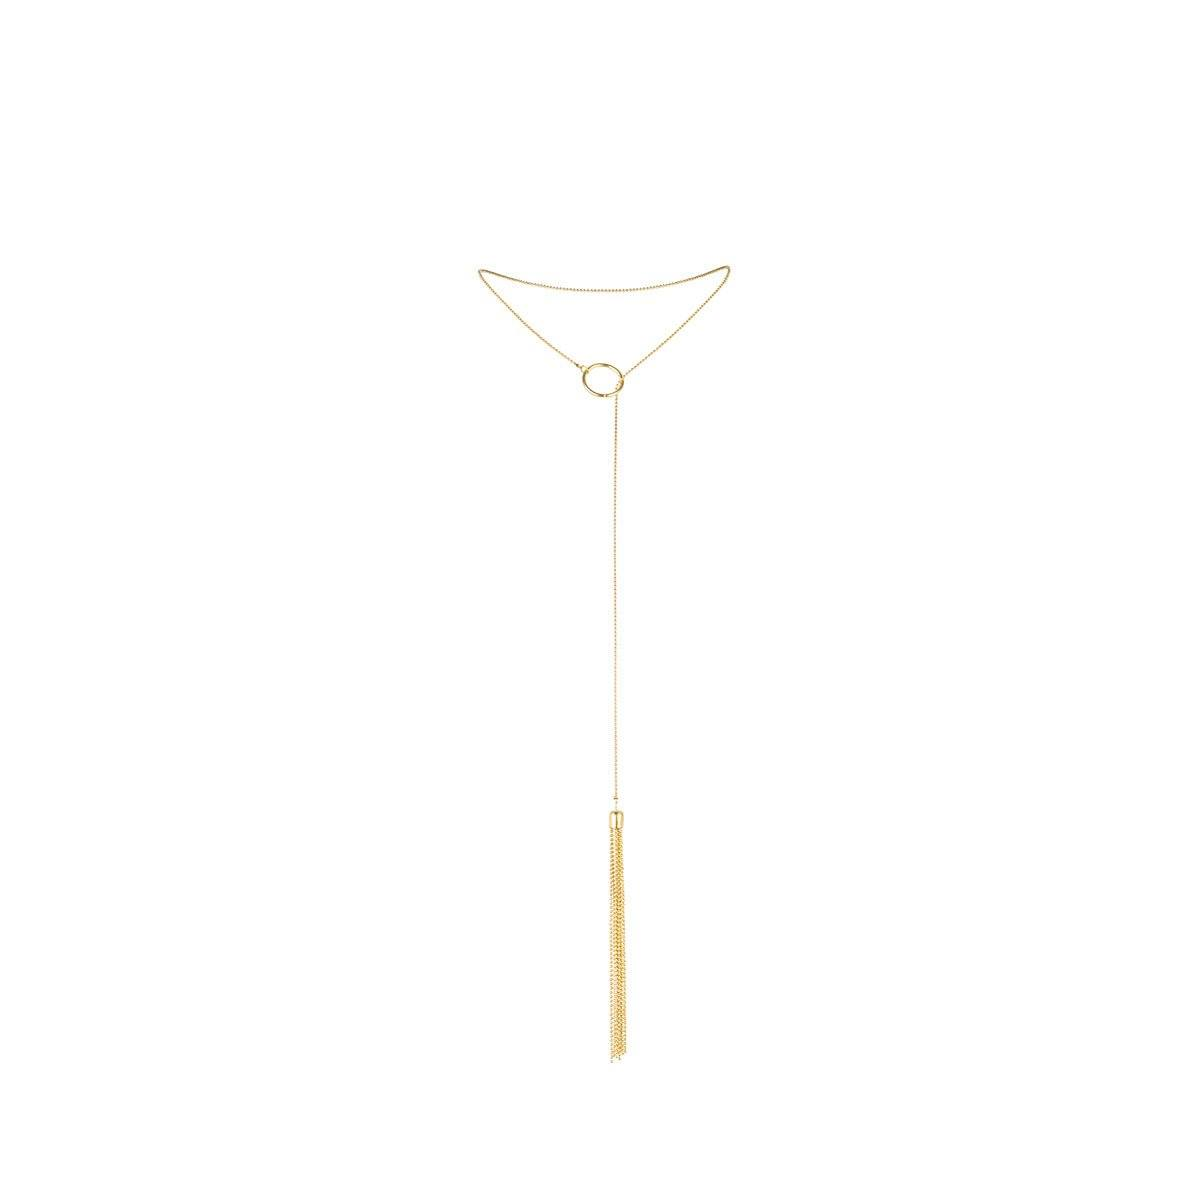 Bijoux Indiscrets Magnifique Collection Tickler Pendant Whips & Teasers Bijoux Indiscrets Gold